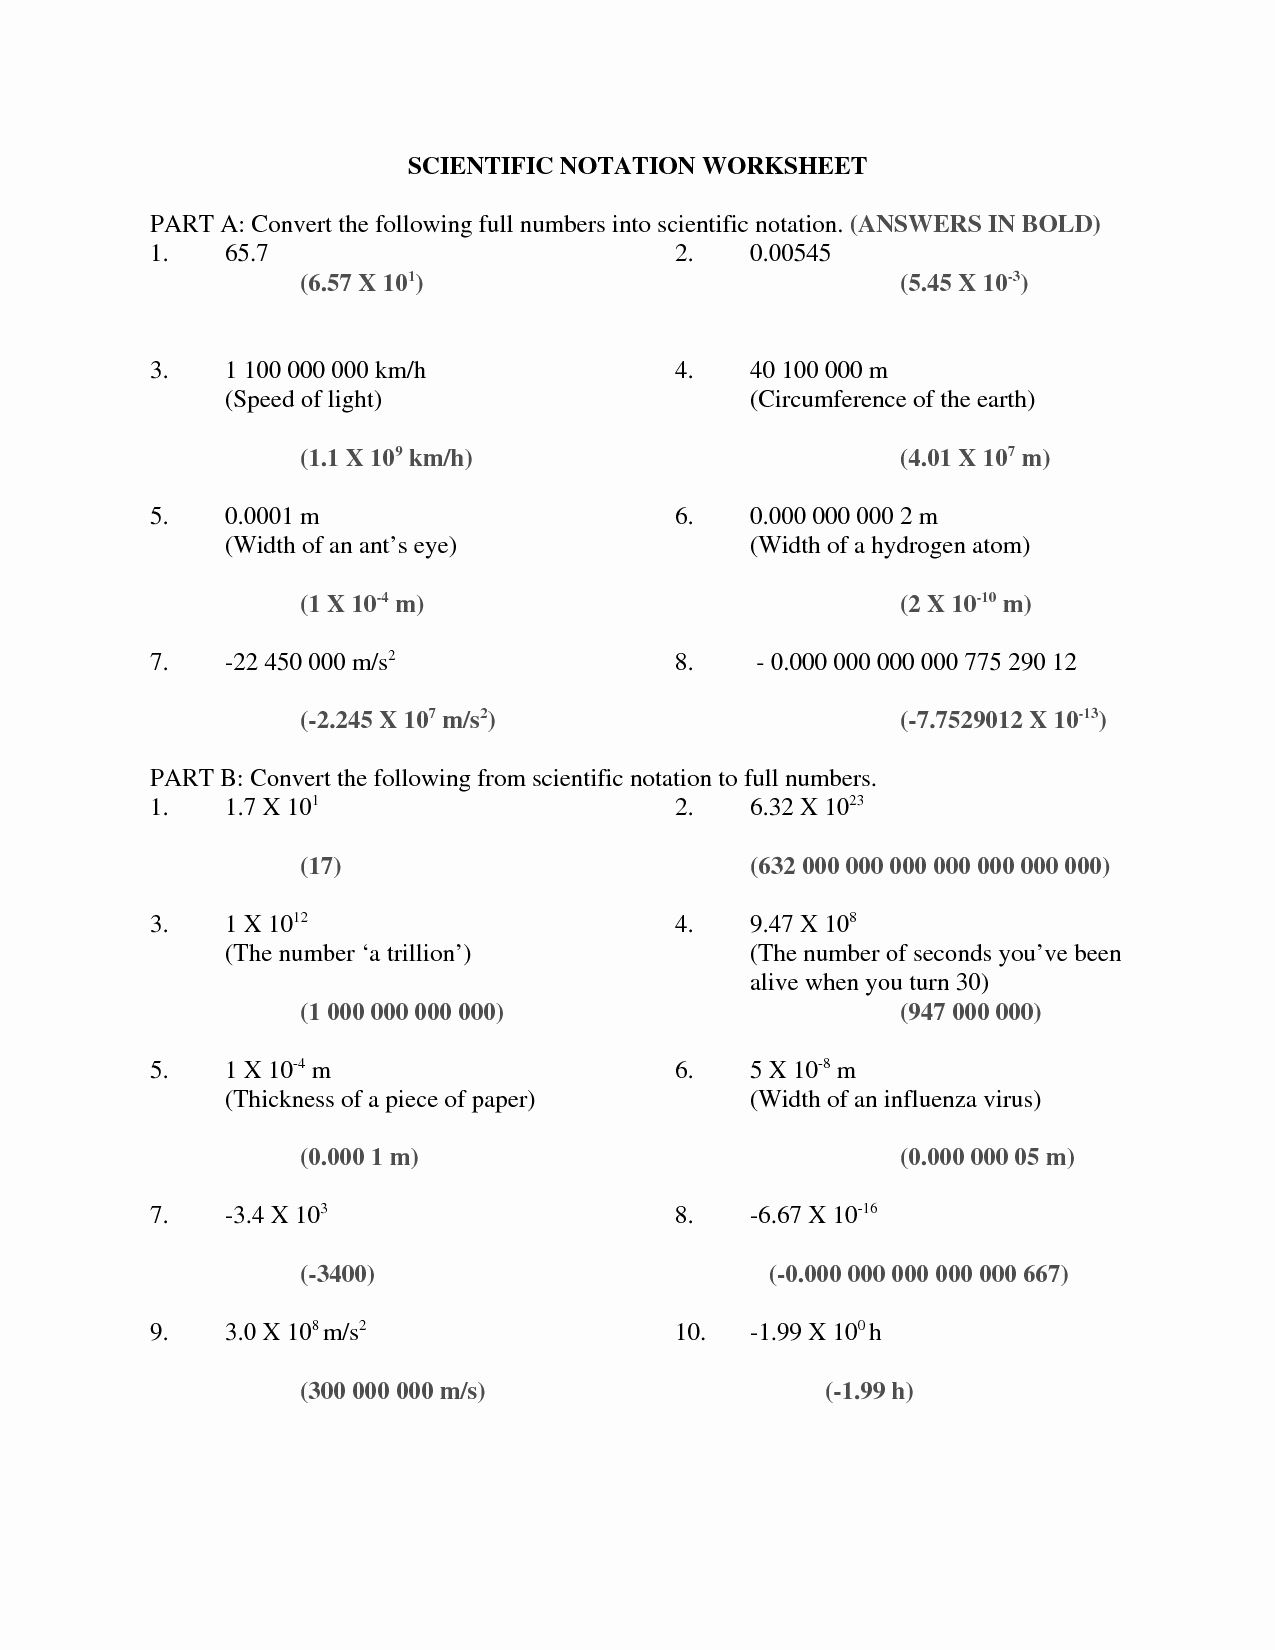 50 Scientific Notation Worksheet Answer Key | Chessmuseum ...